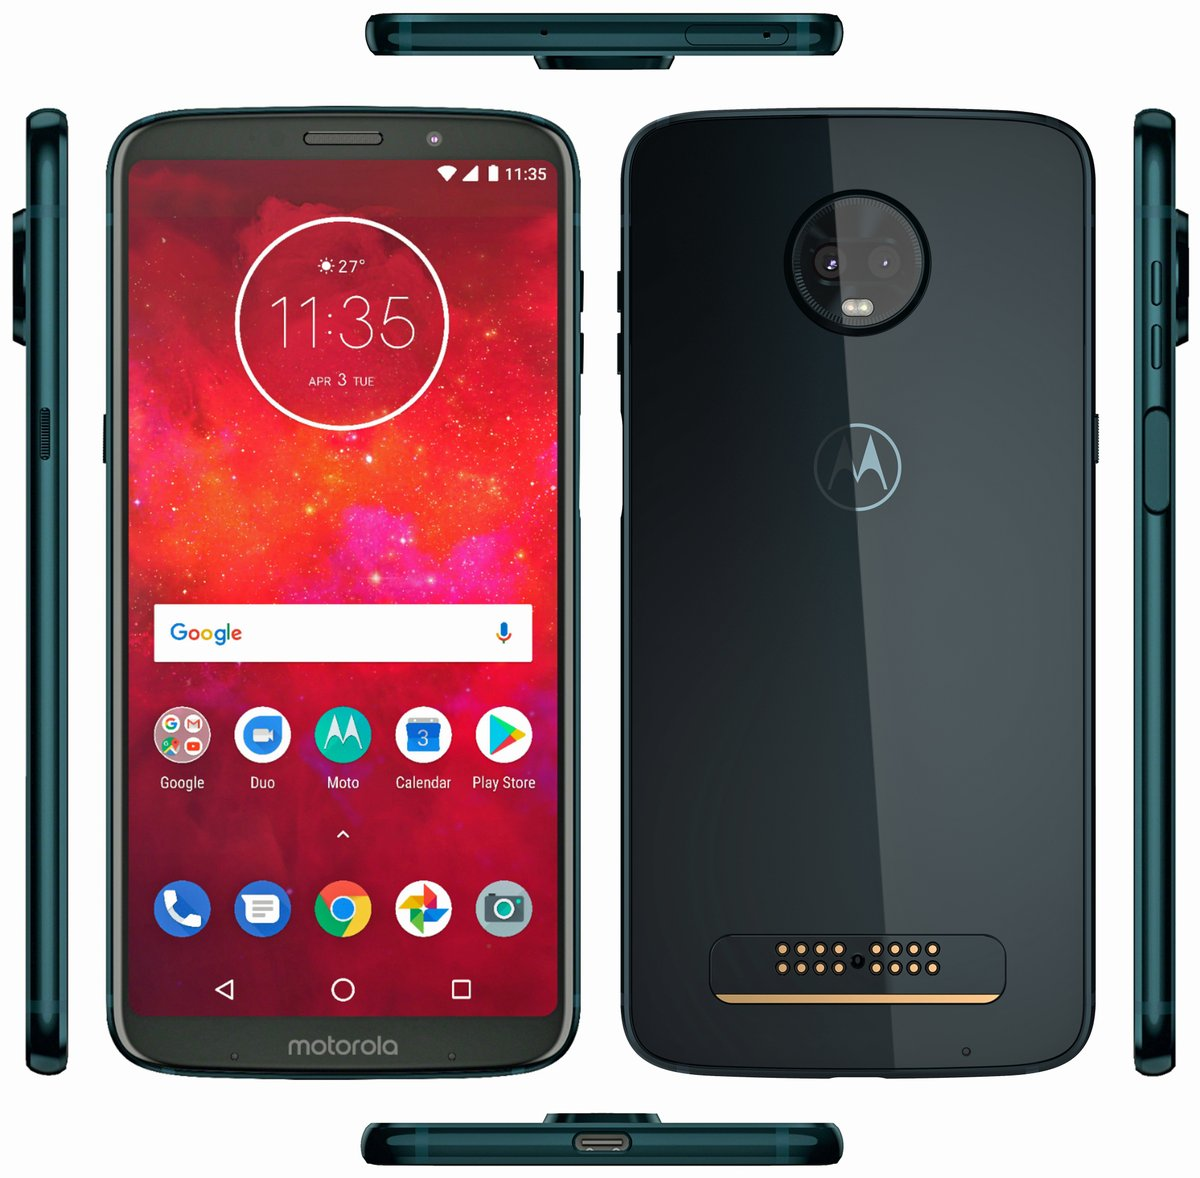 The first smartphone with support for 5G networks is announced